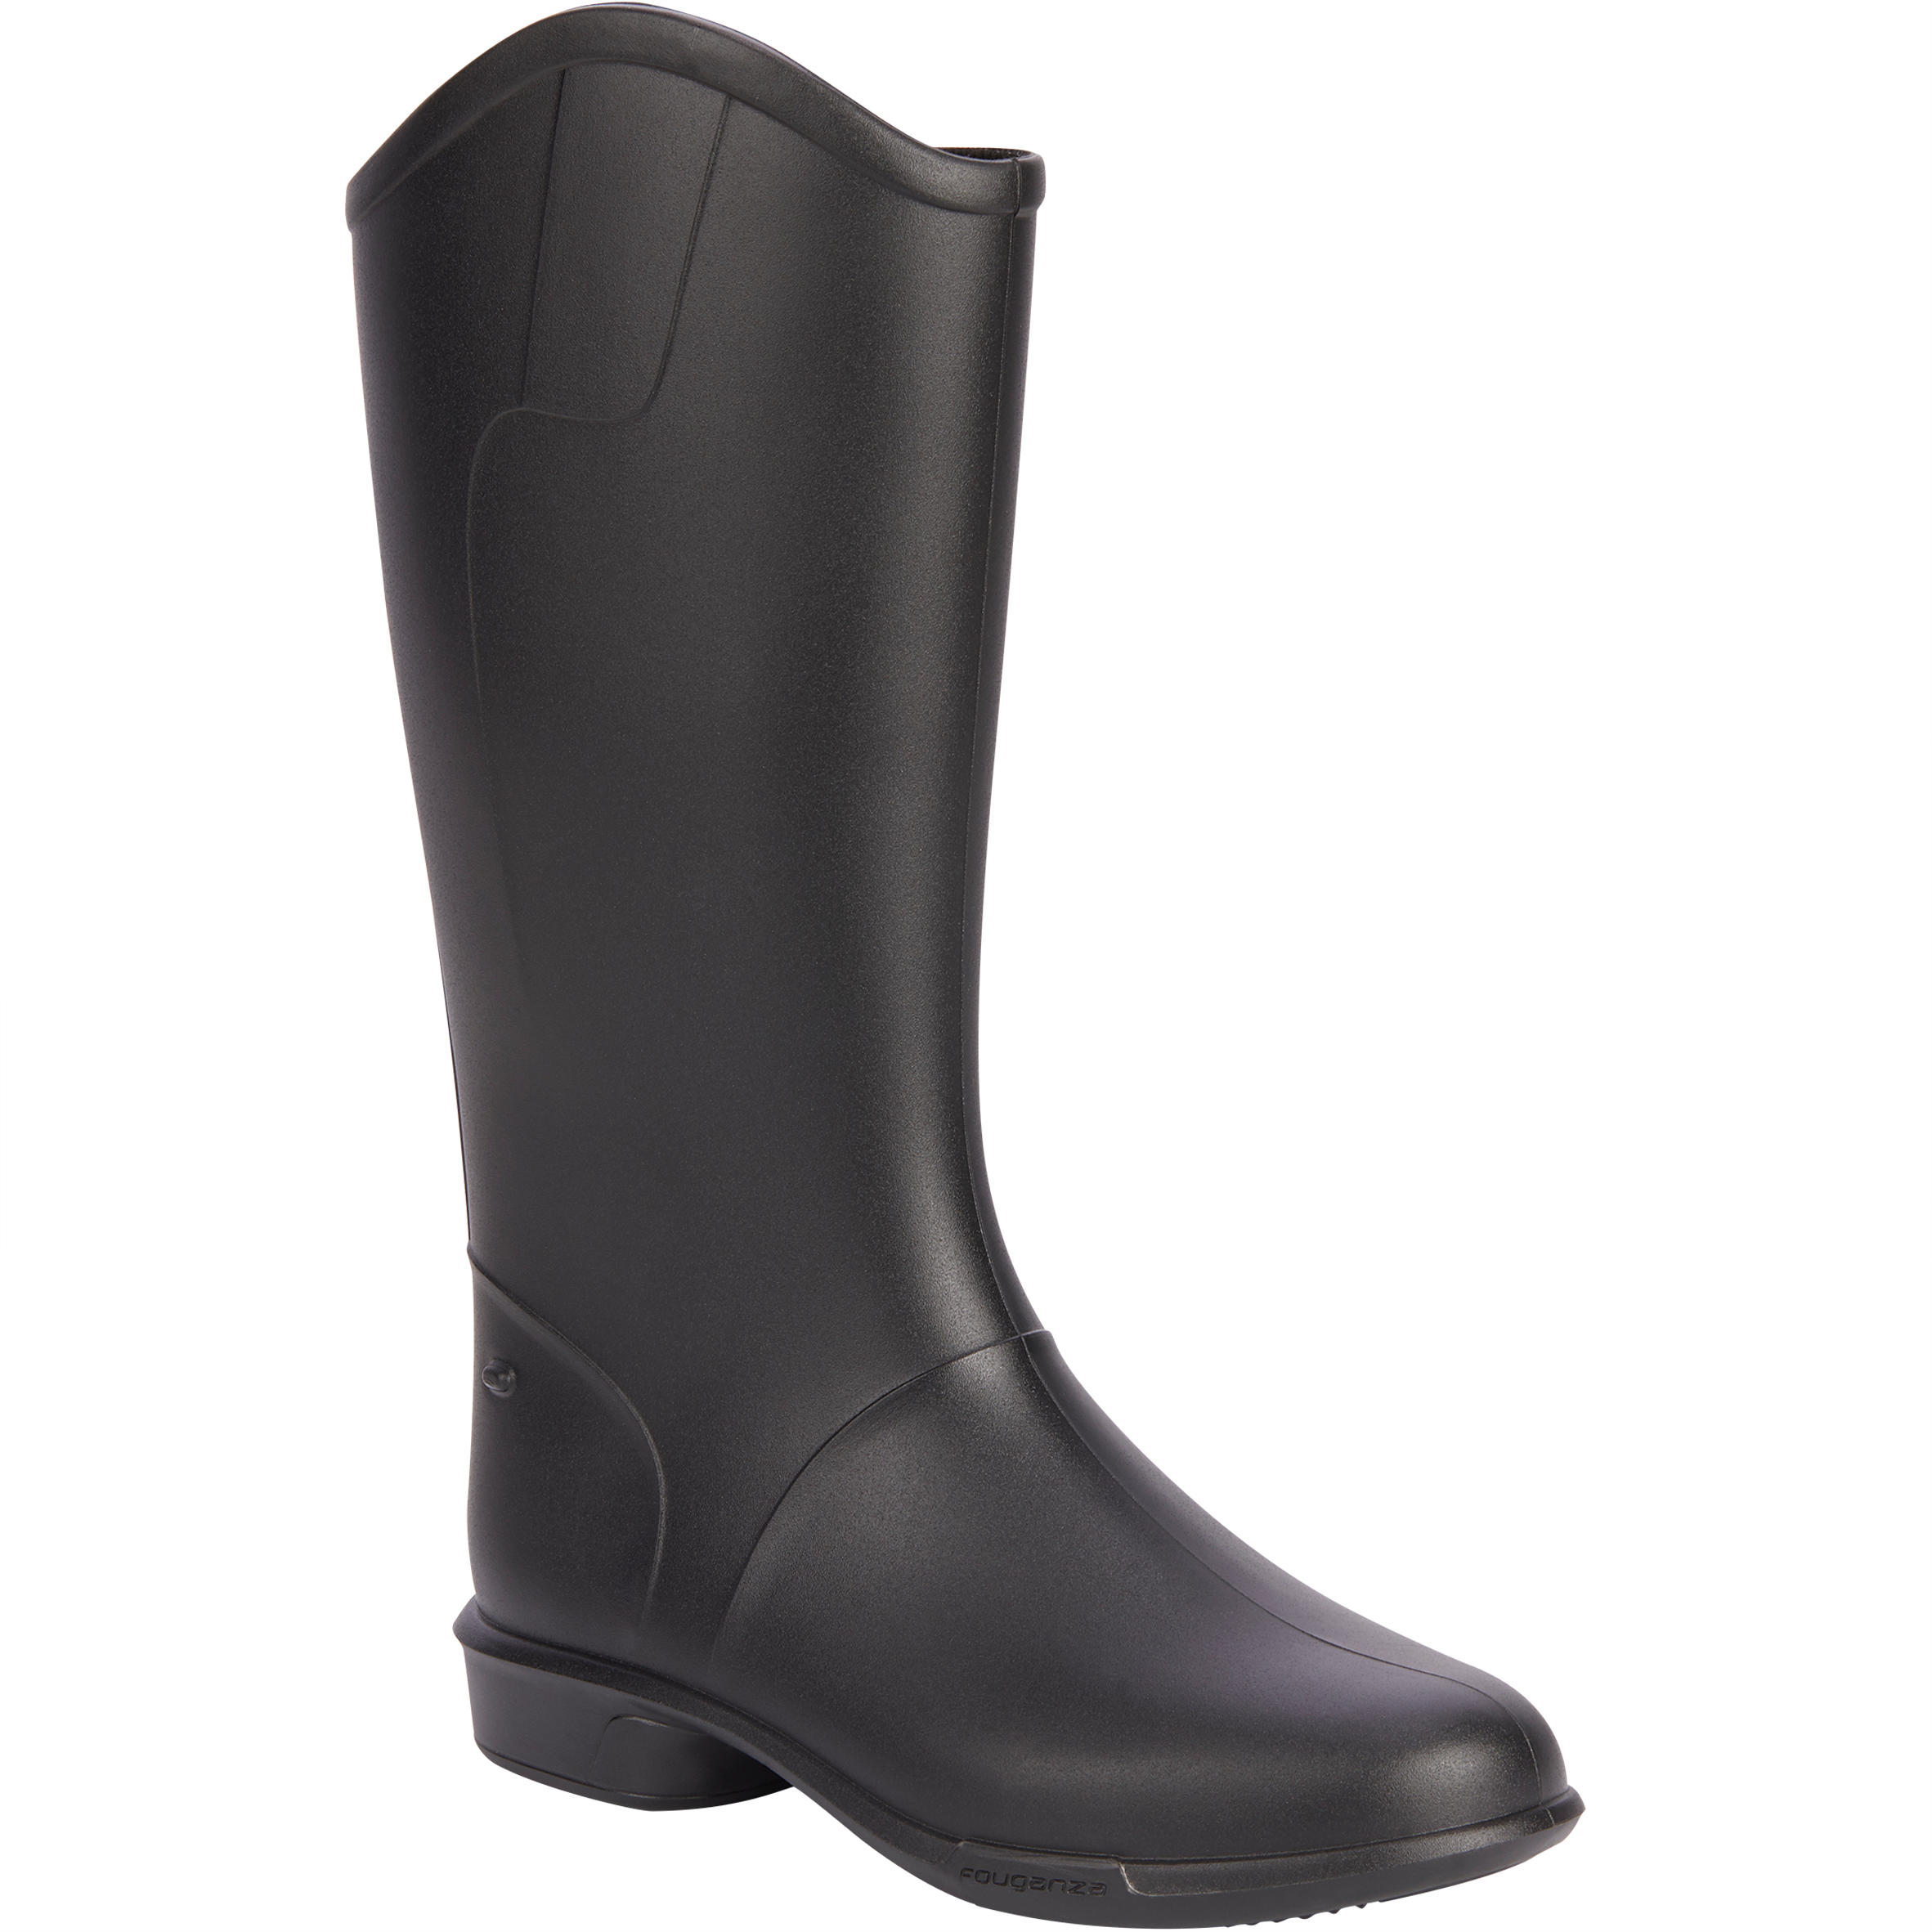 BH 100 Kids' Horse Riding Boots - Black